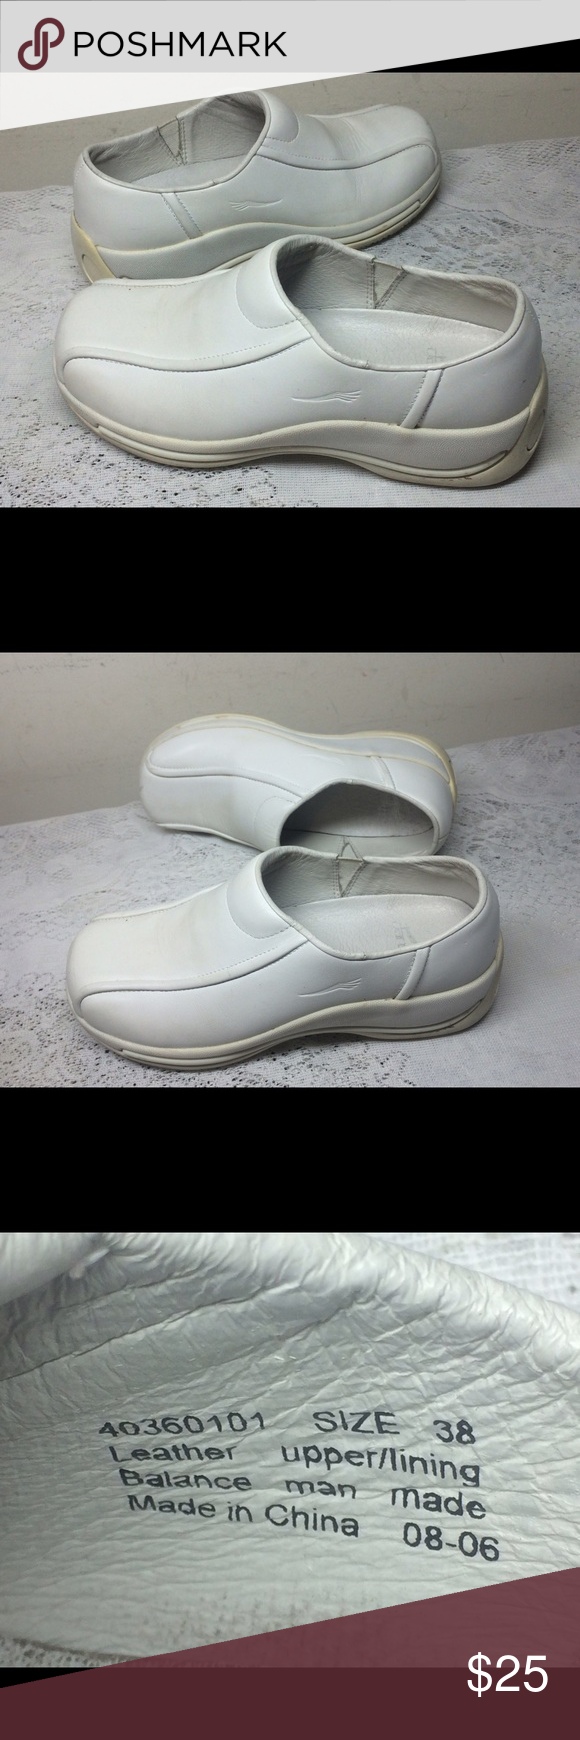 DANSKO PROFESSIONAL CLOG SIZE 38 Excellent Used Condition. Dansko Shoes Mules & Clogs